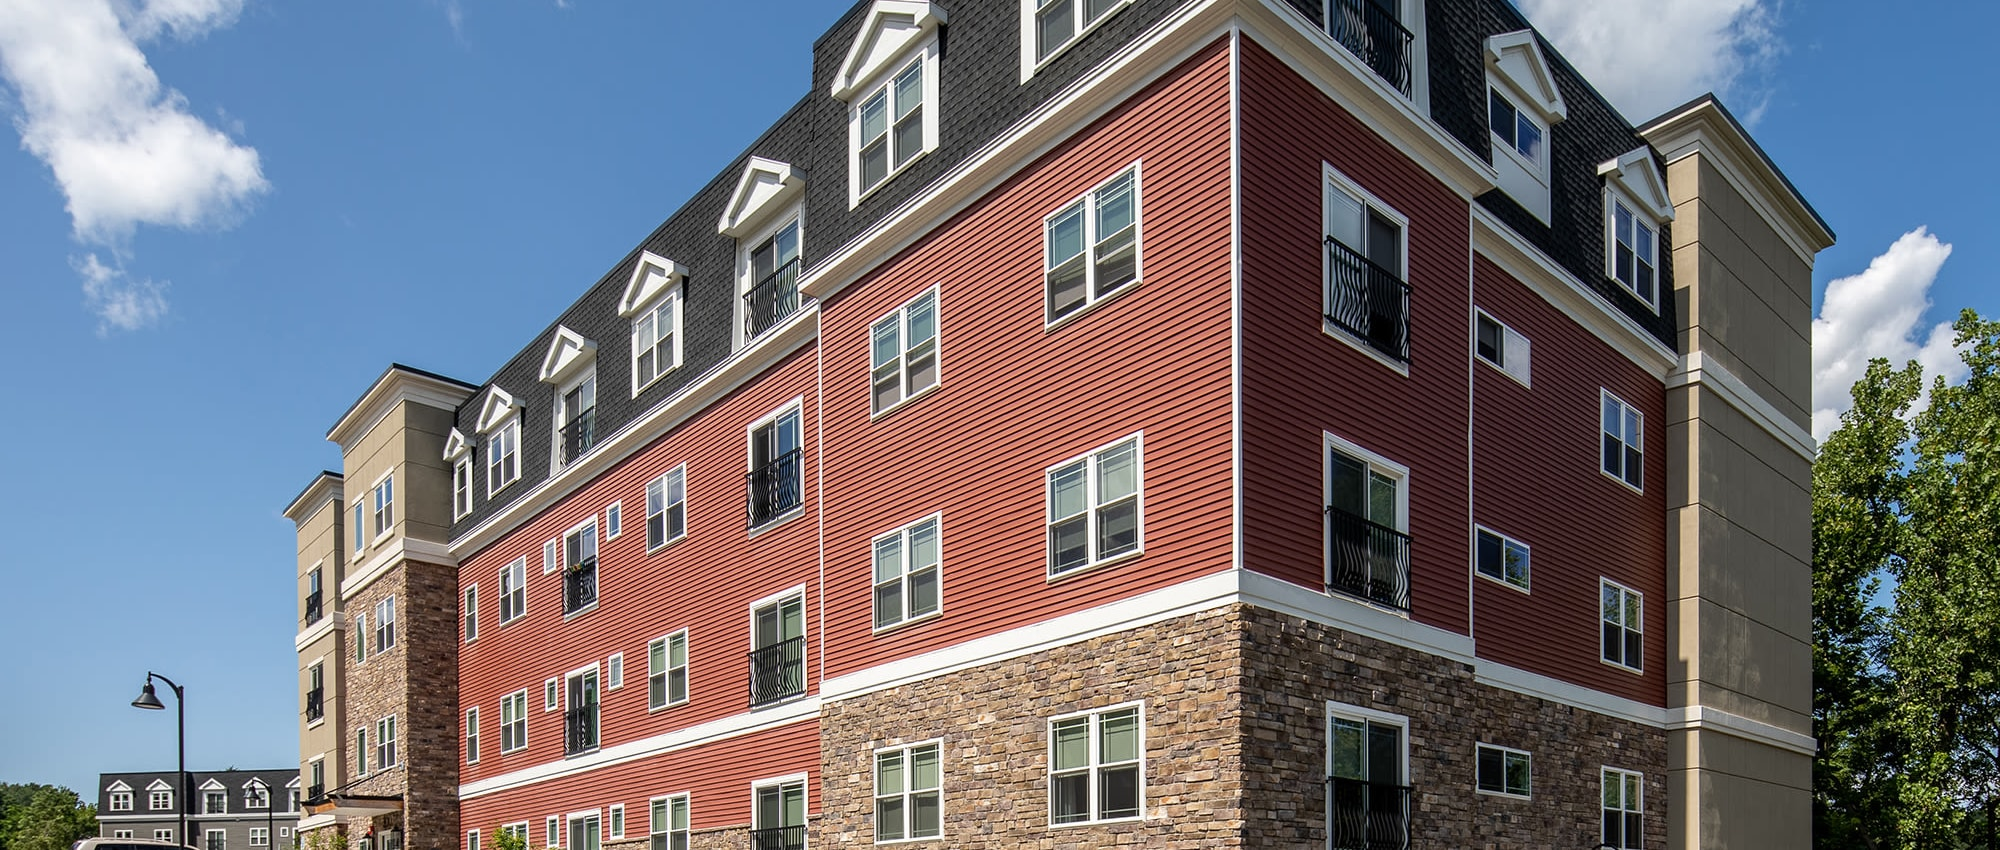 Apartments at Ellison Heights Apartments in Rochester, New York